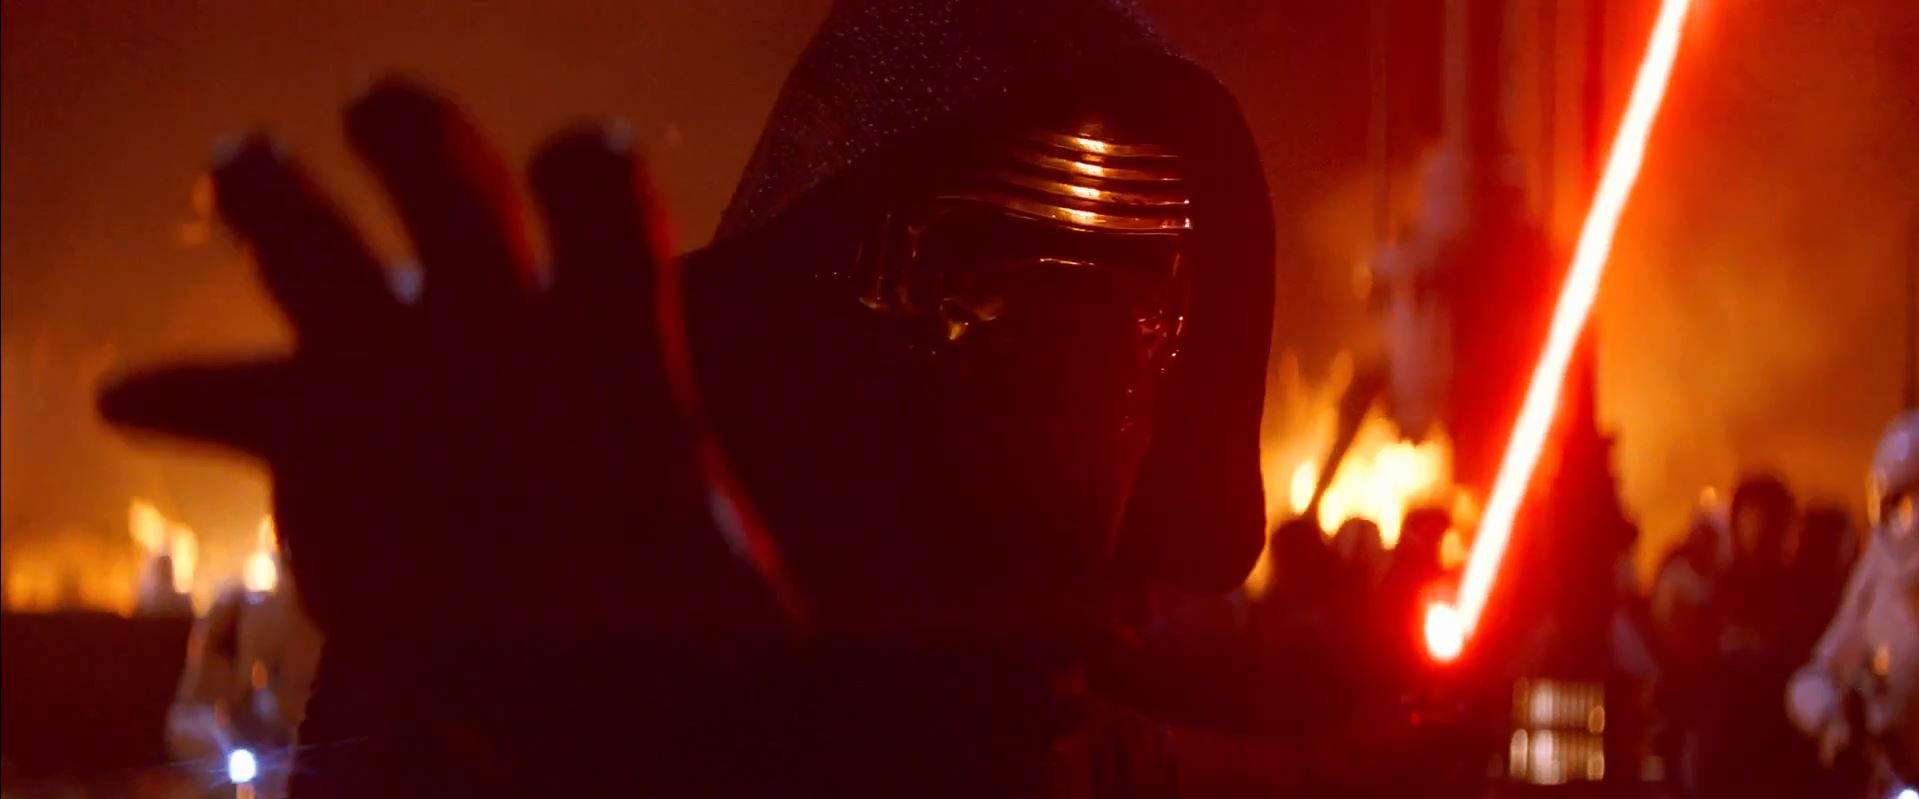 New Sith Lord. New Star Wars The Force Awakens Trailer Released!